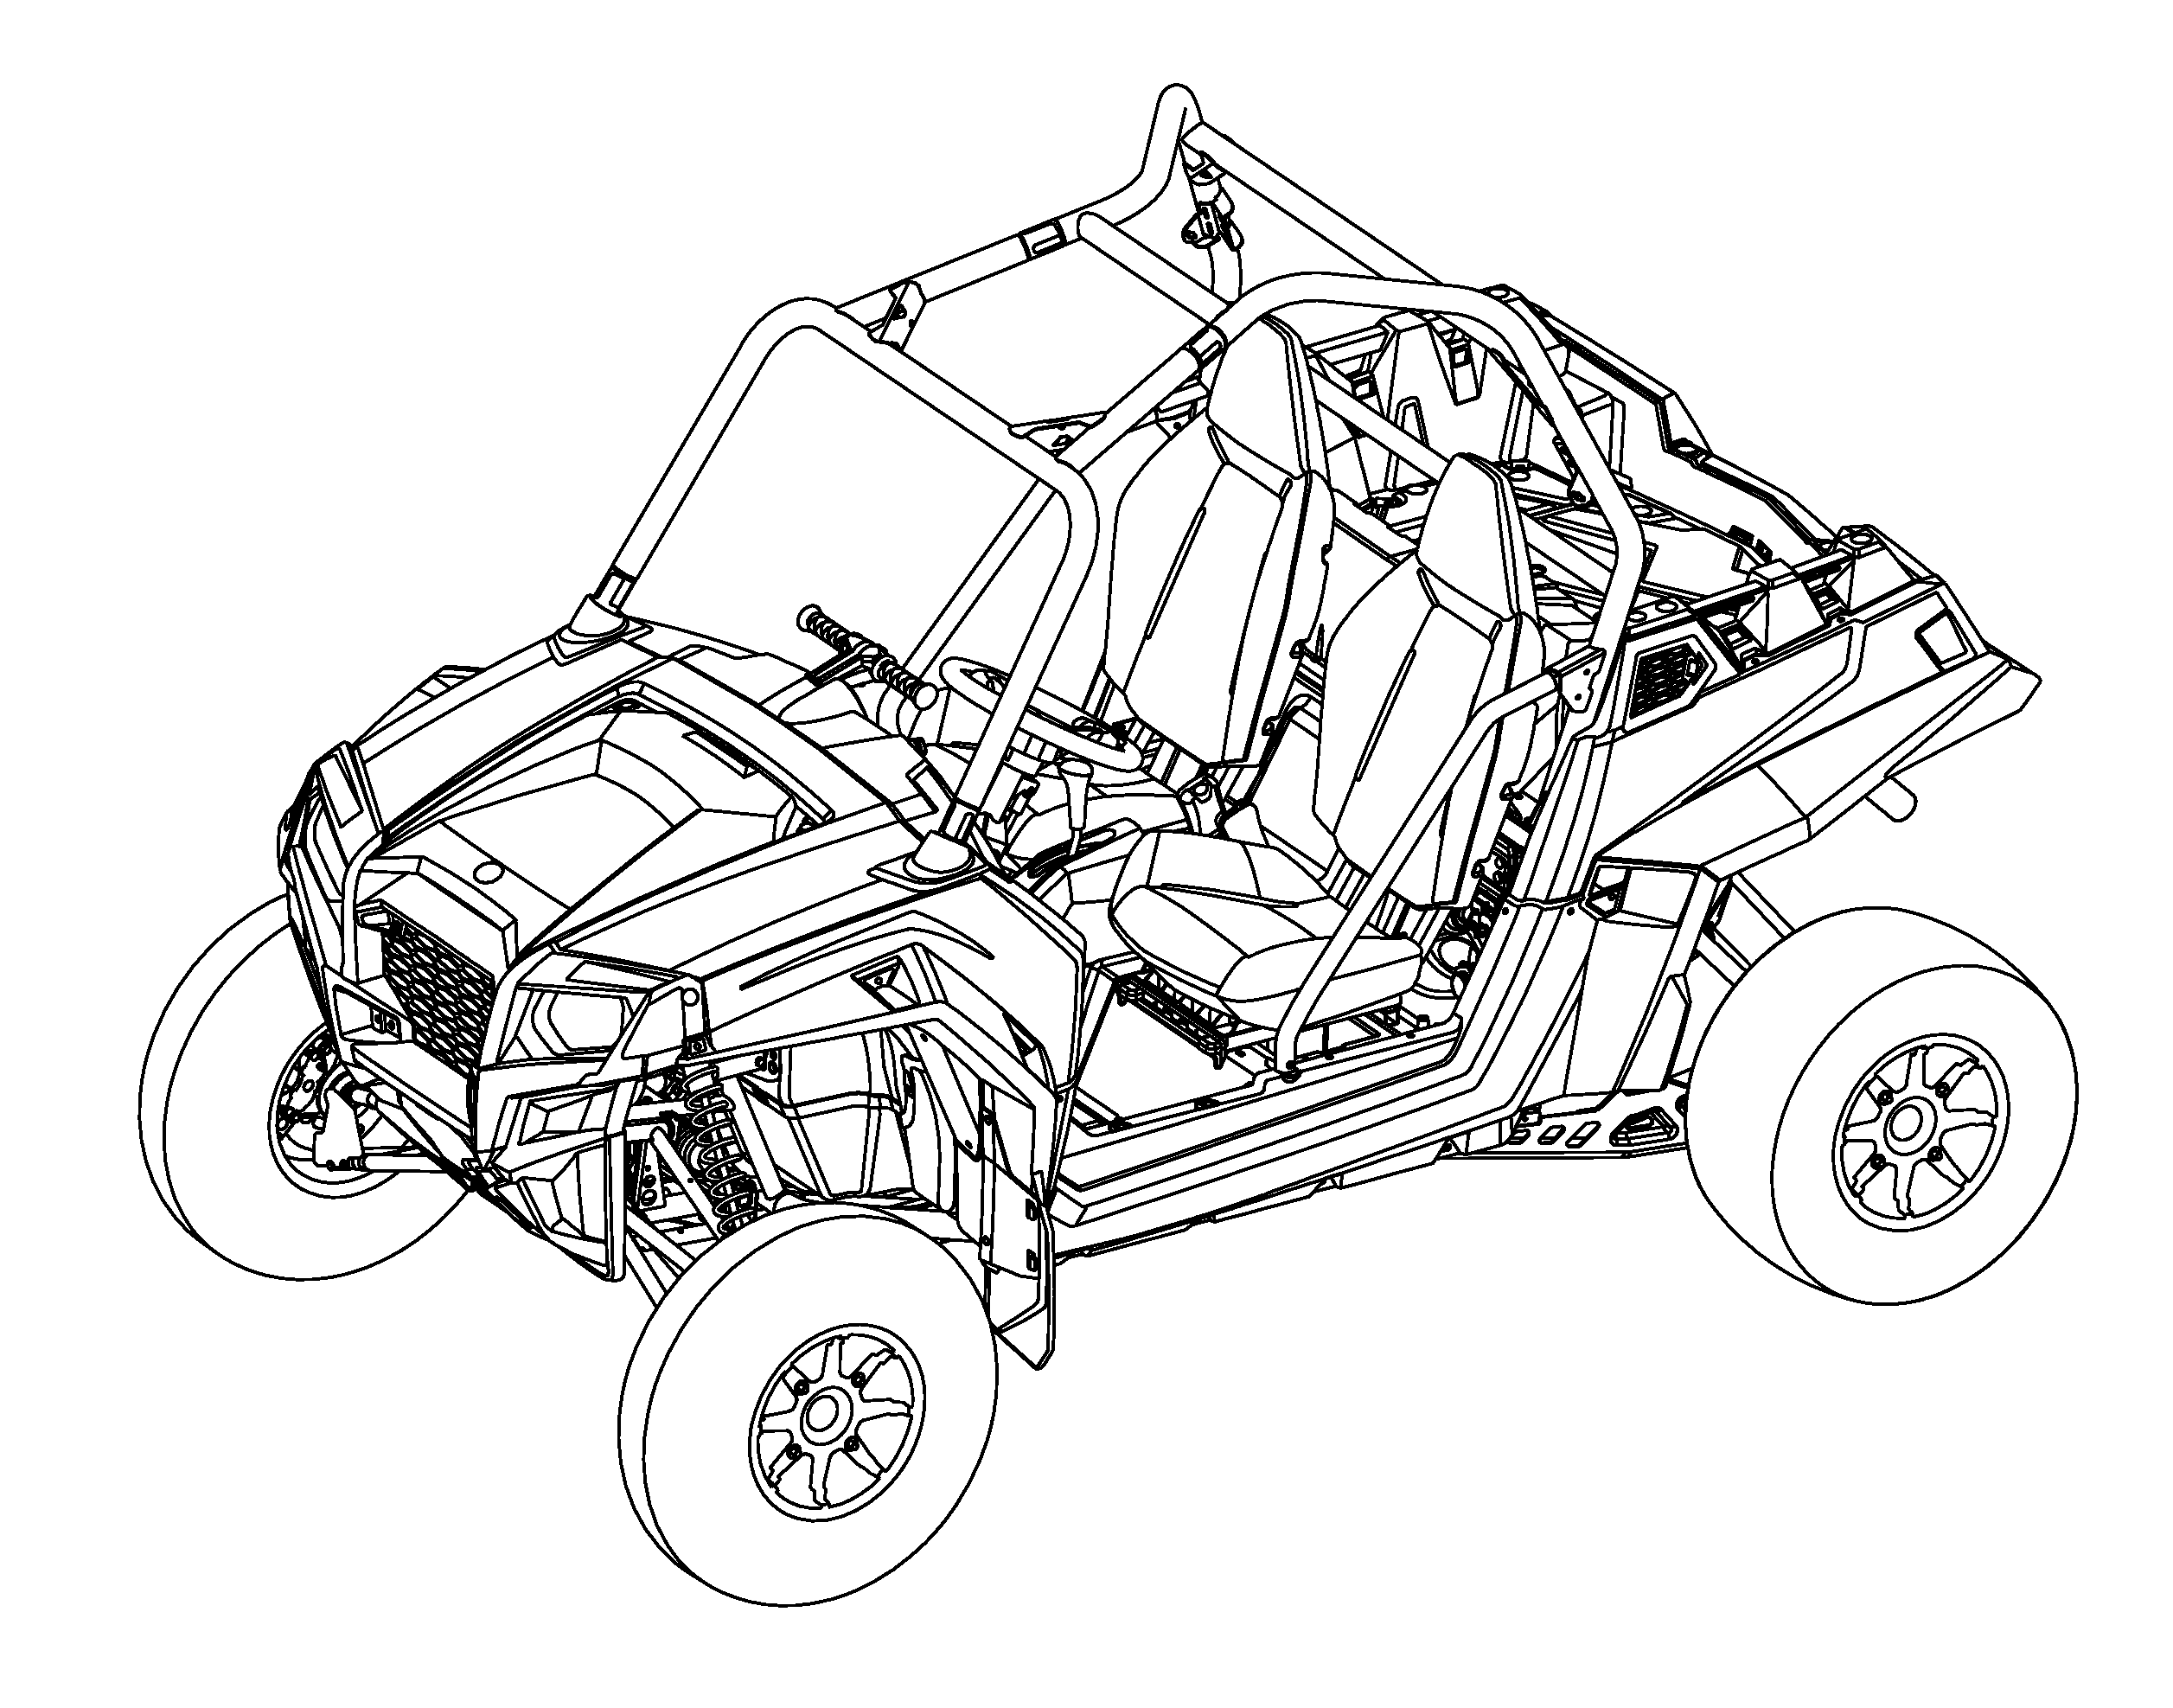 Polaris Rzr Drawing